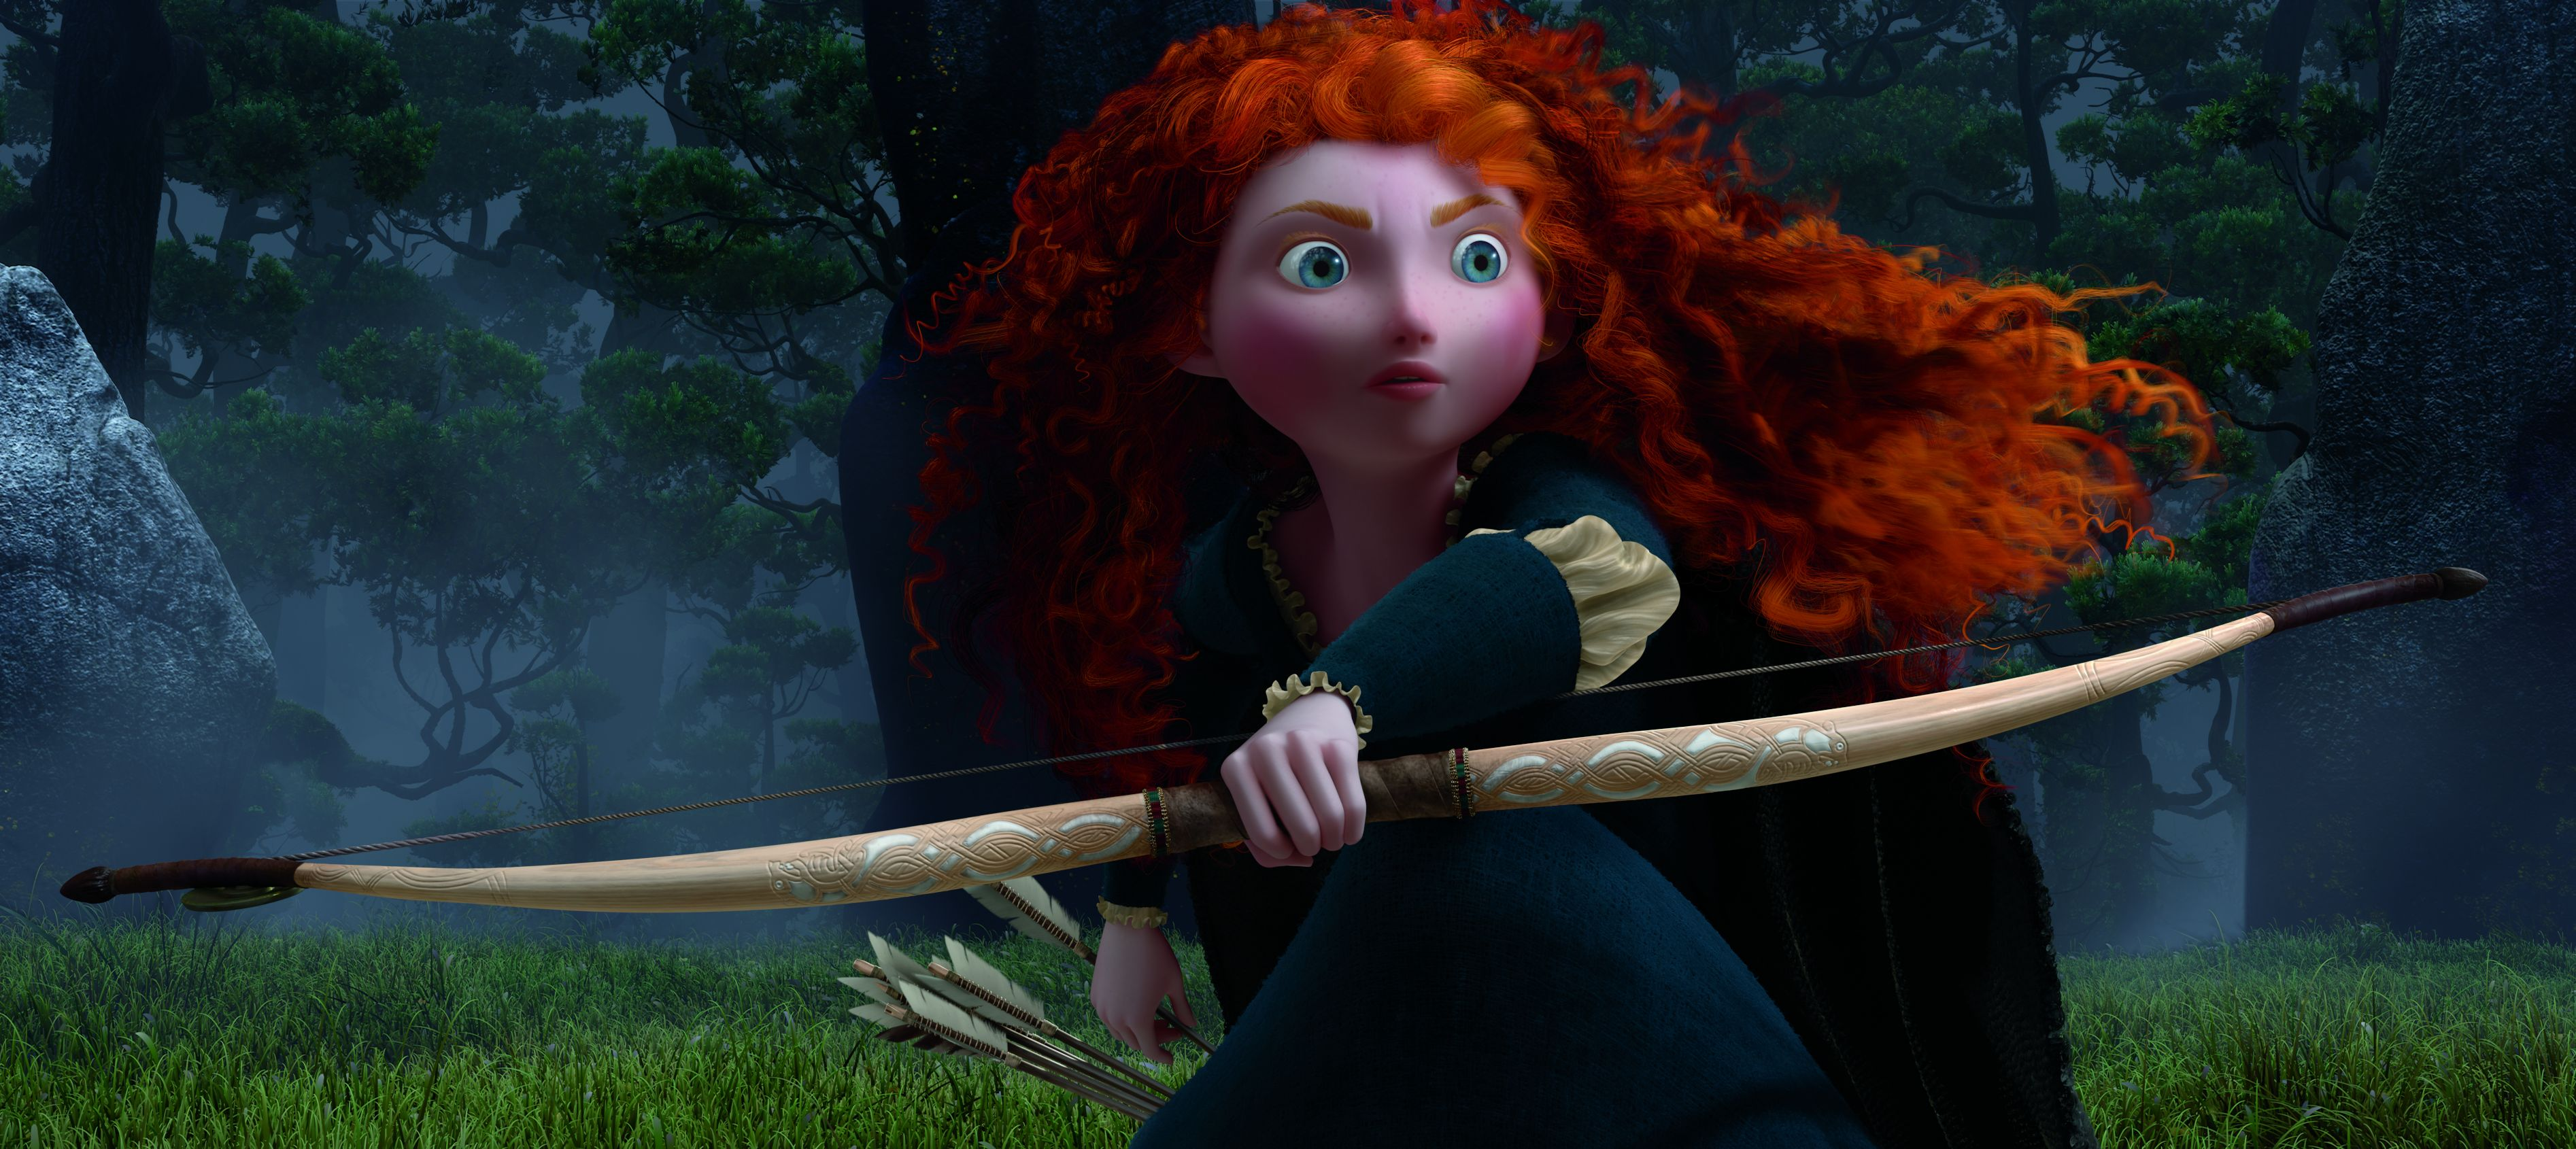 Merida up and close in Brave